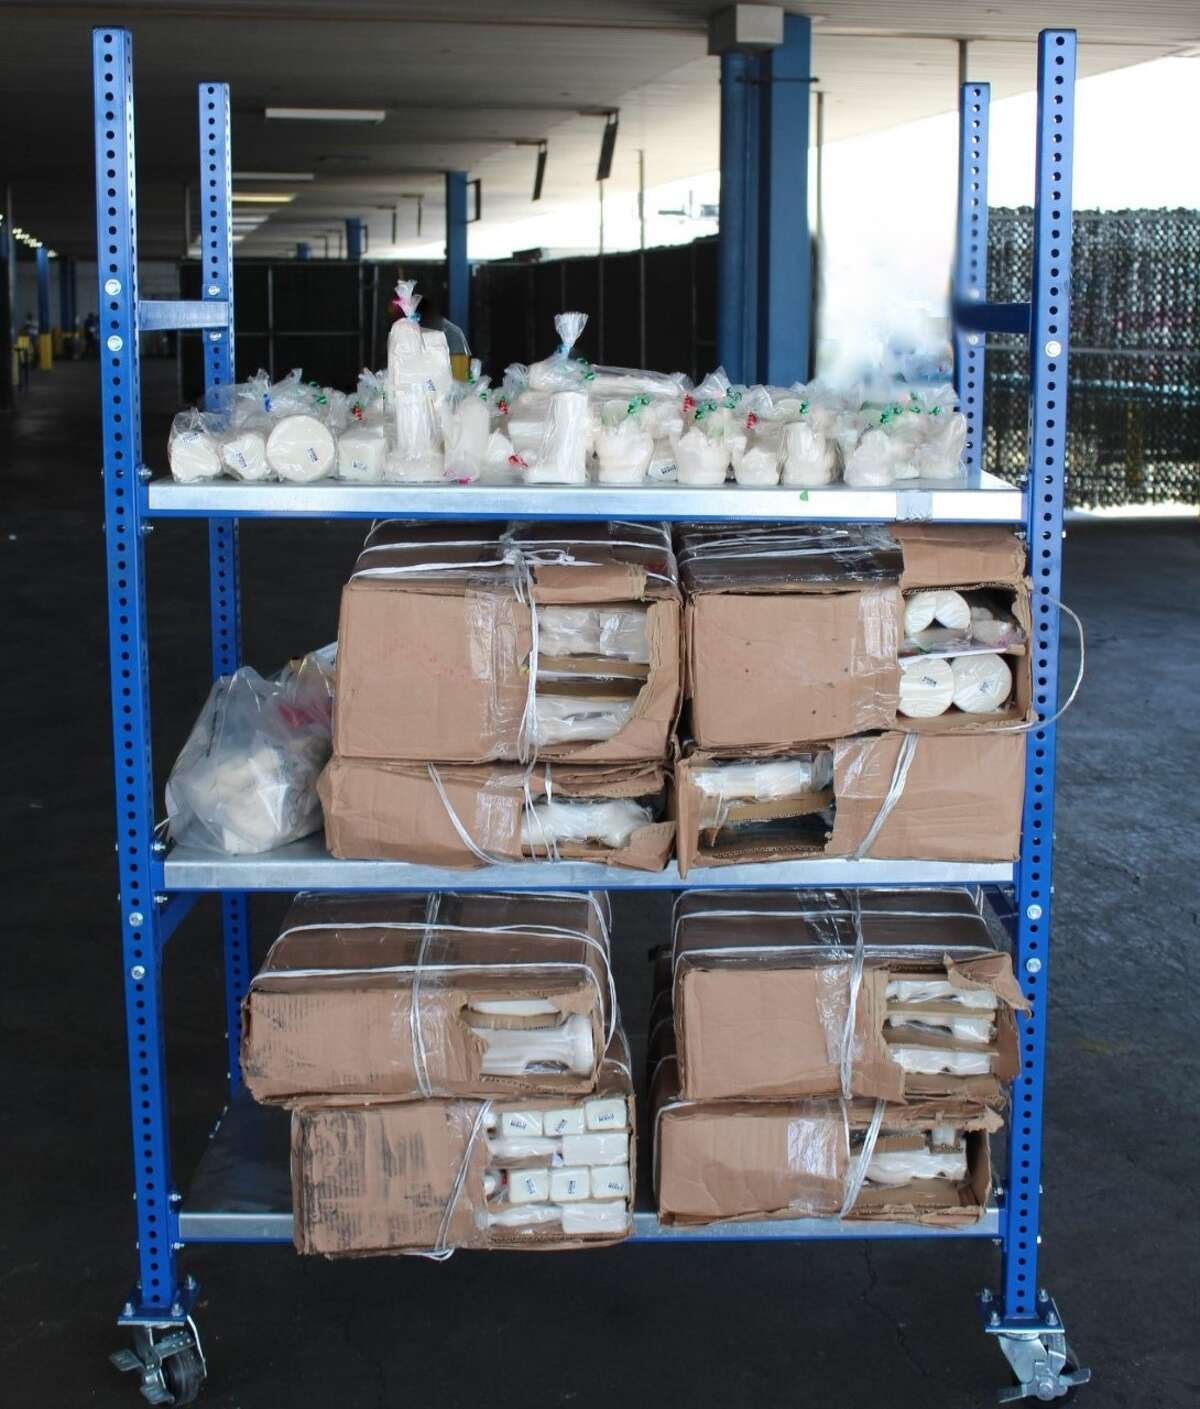 U.S. Customs and Border Protection officers said they seized these narcotics at the World Trade Bridge. Authorities said the contraband tested positive for meth and had an estimated street value of $11 million.